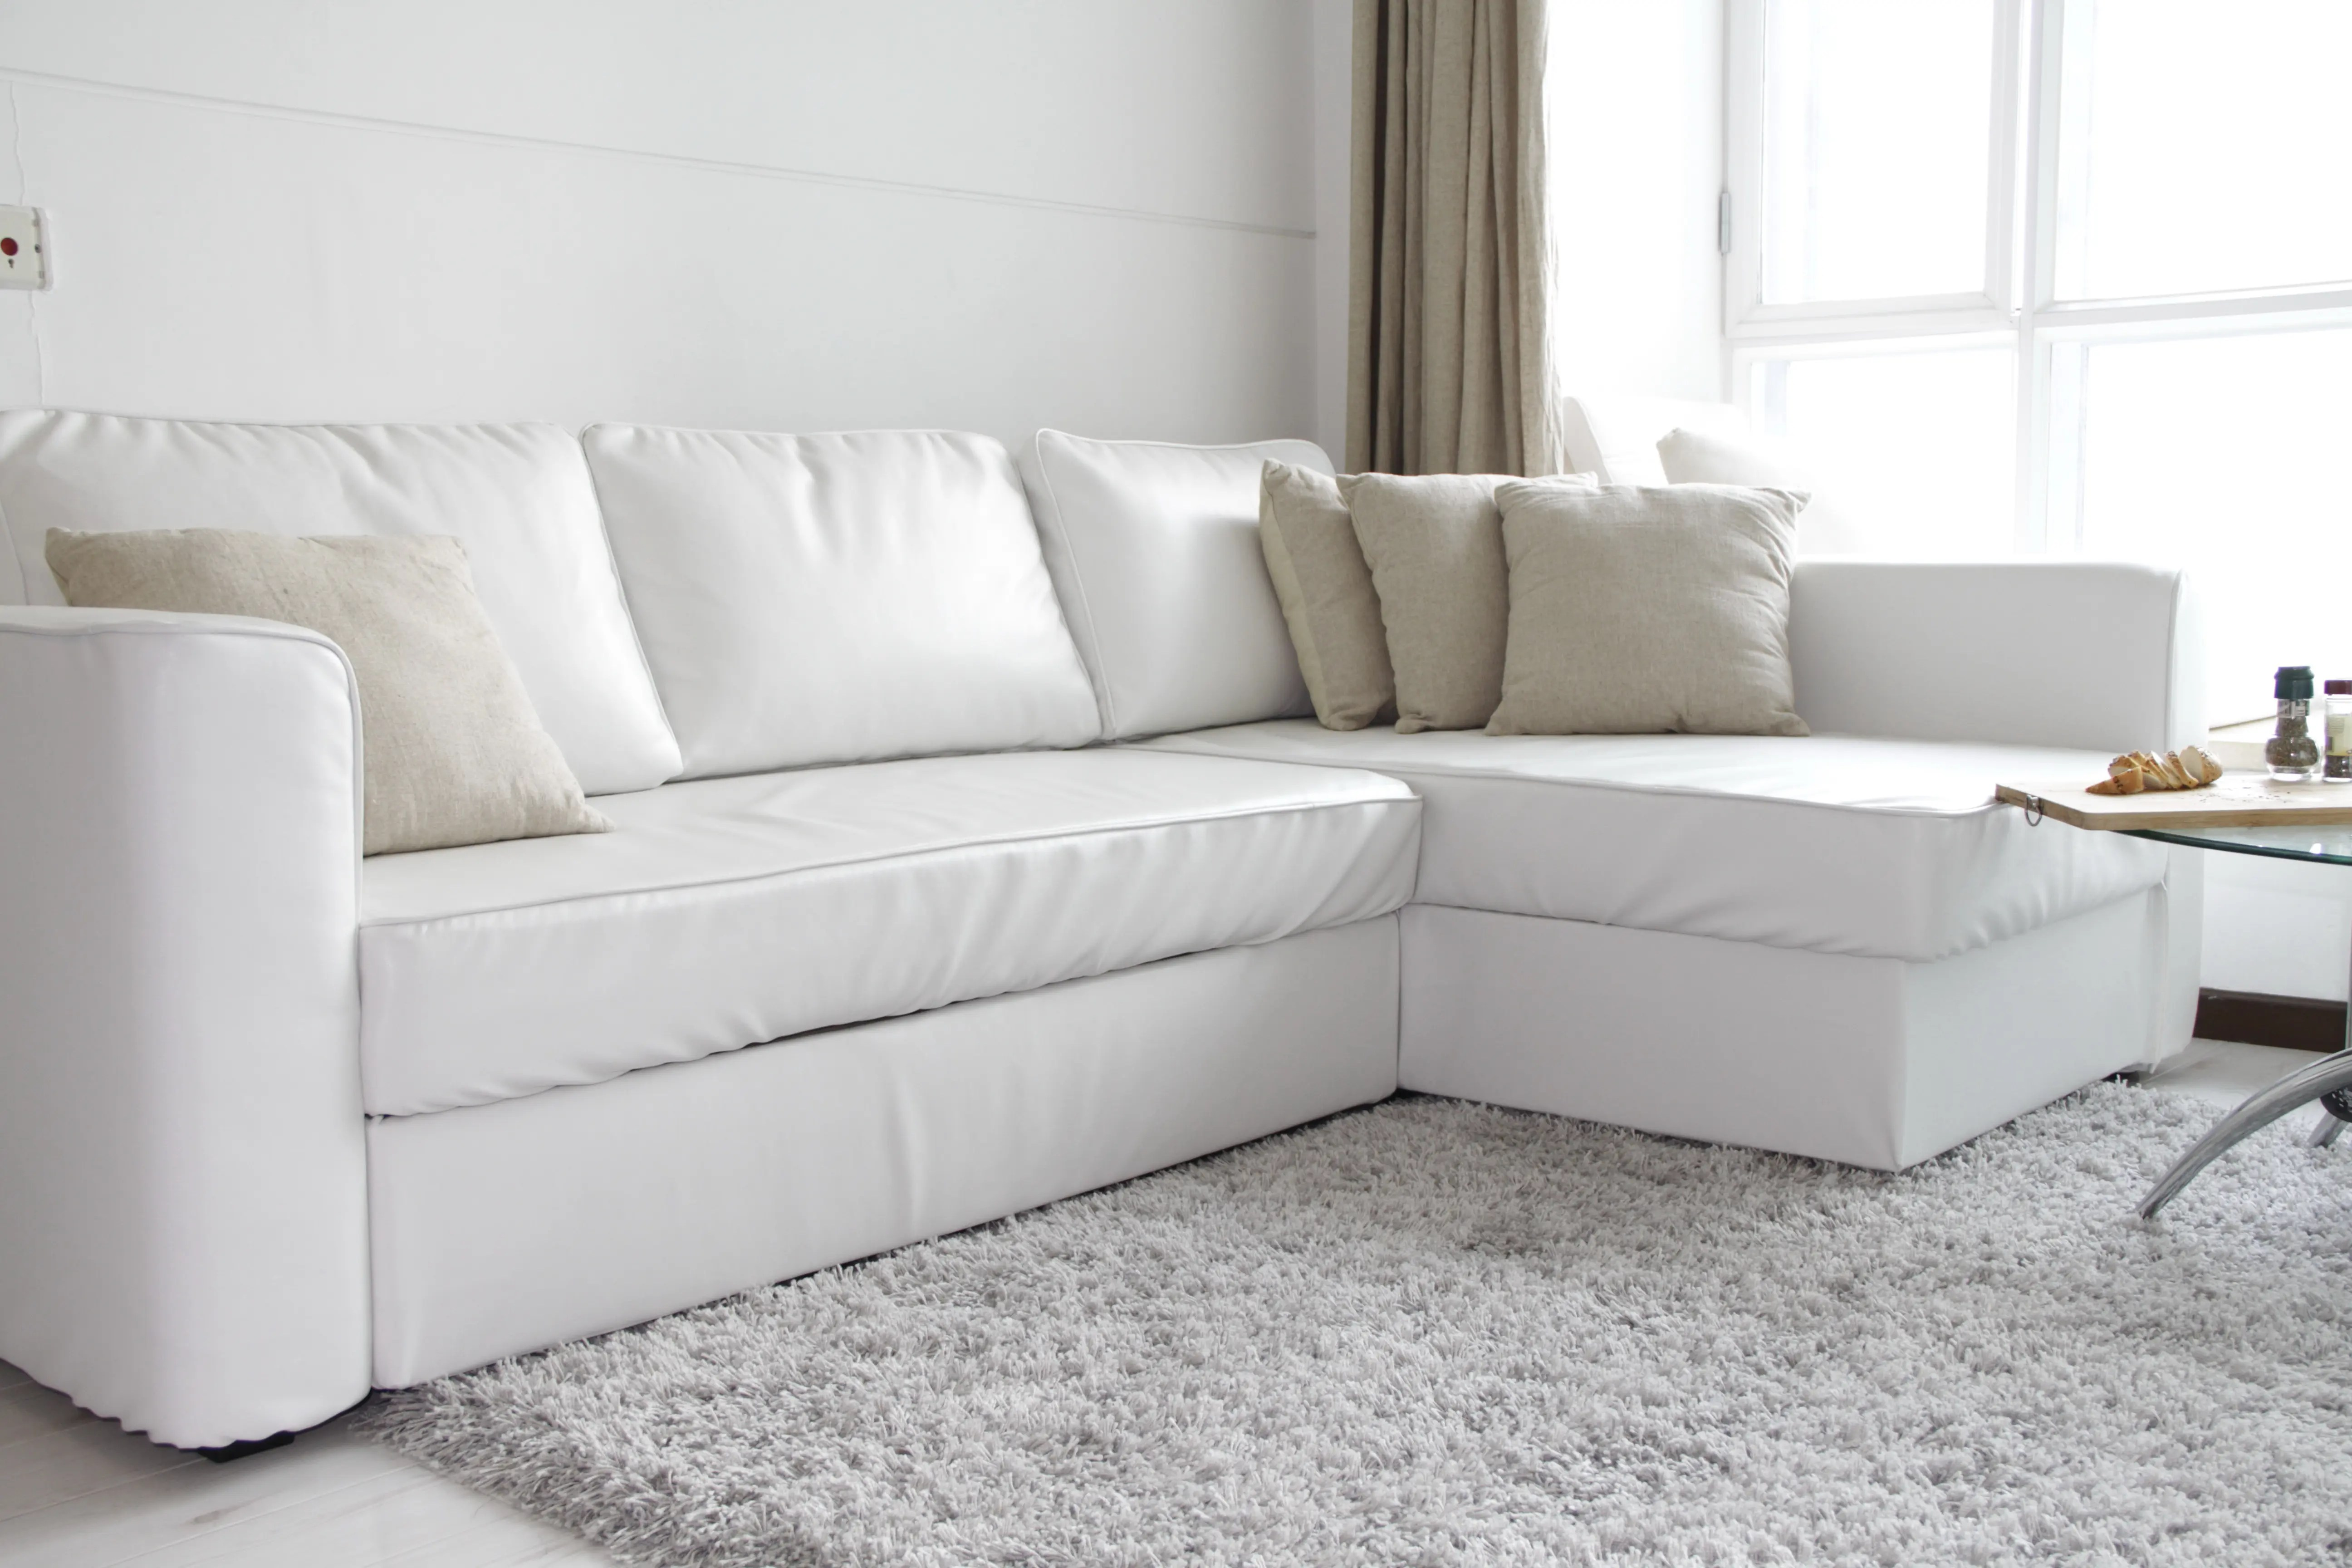 sofas in ikea grey sofa chaise lounge 11 ways your can look a million bucks